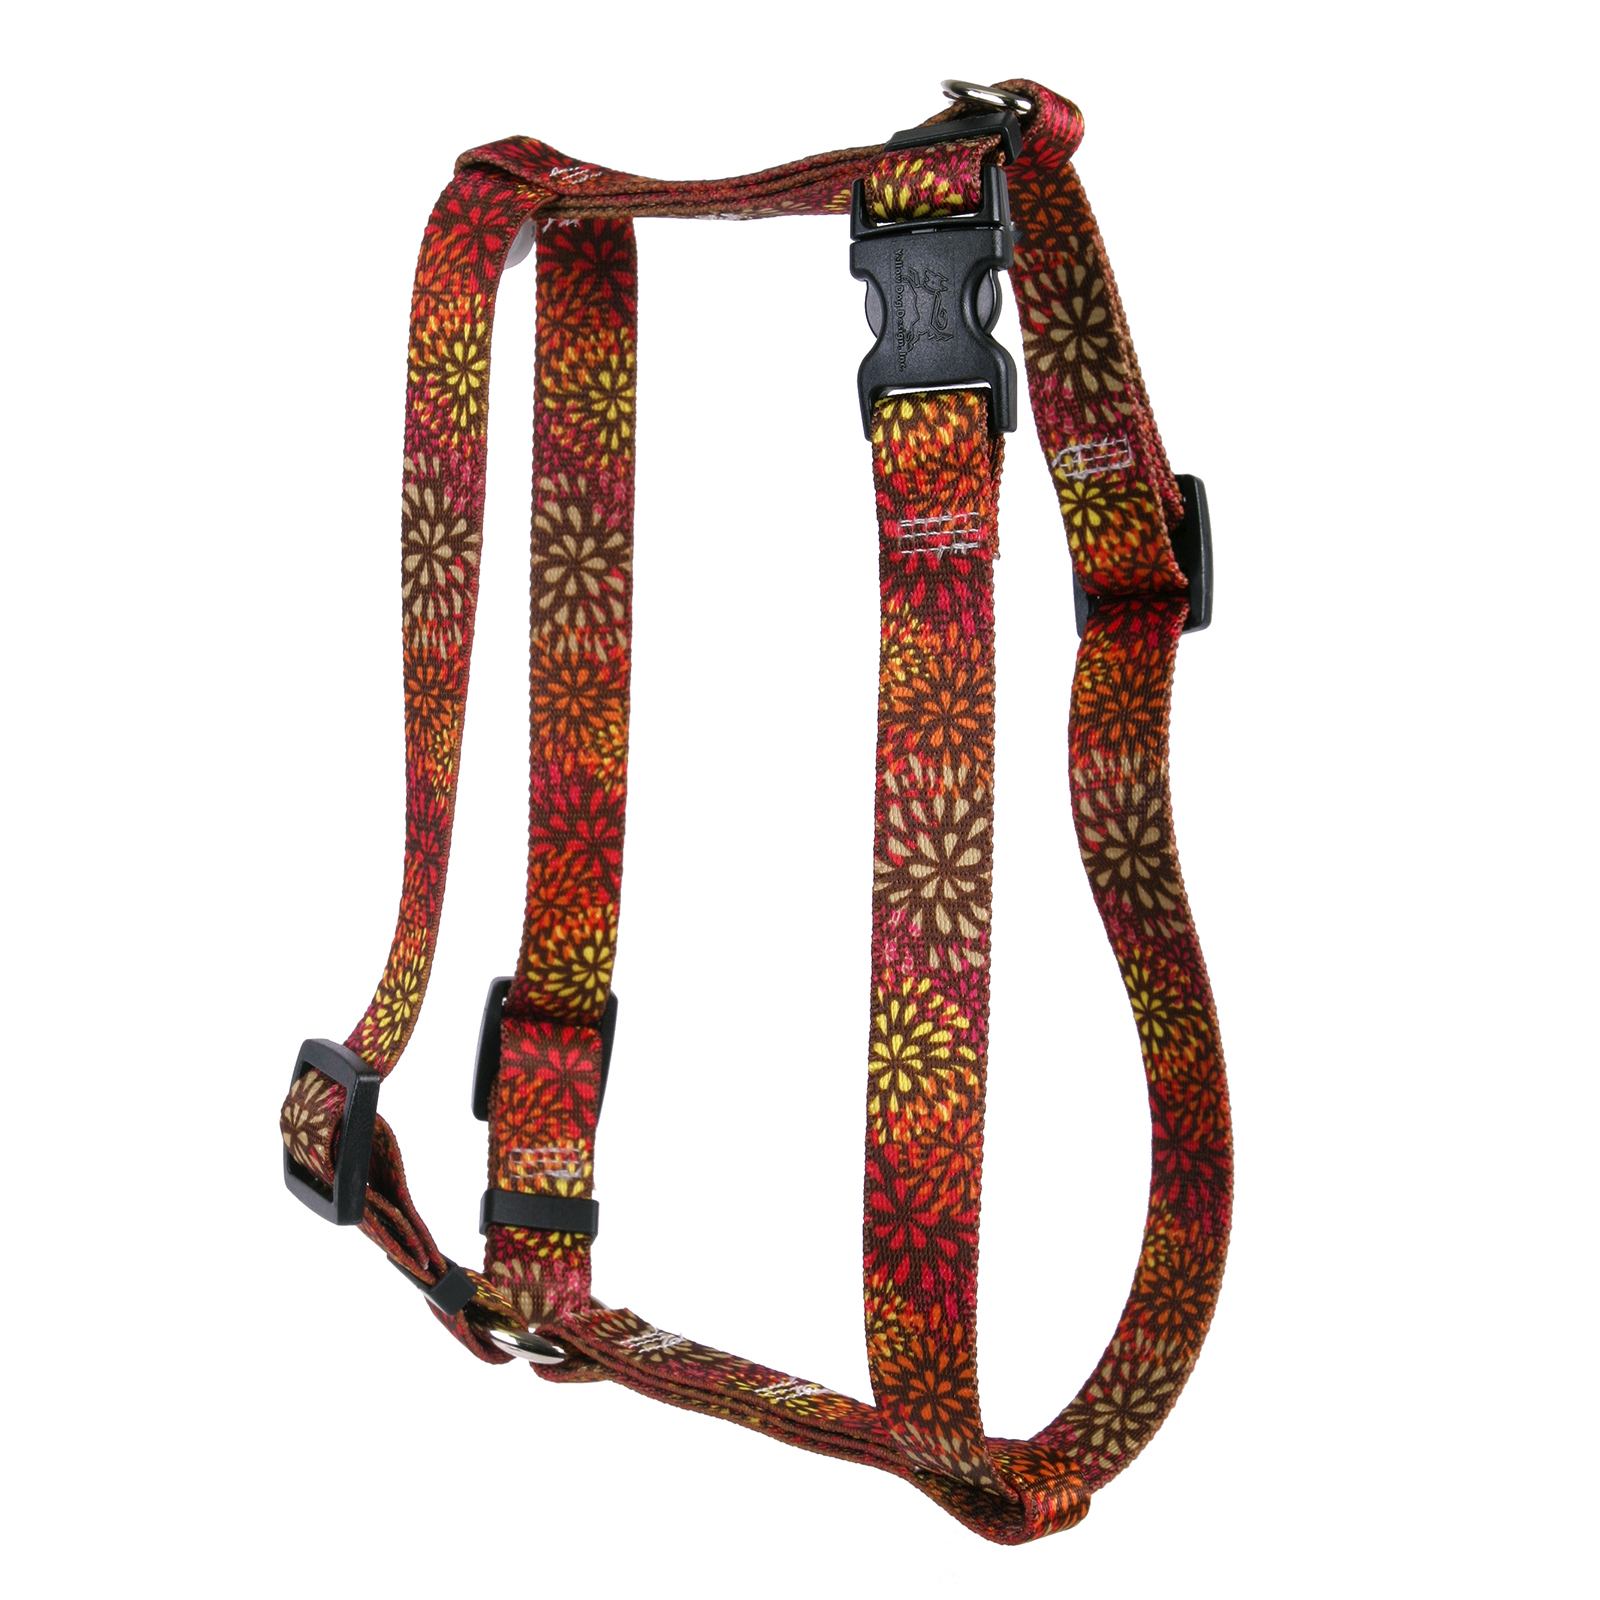 Flowerworks Red Roman H Harness